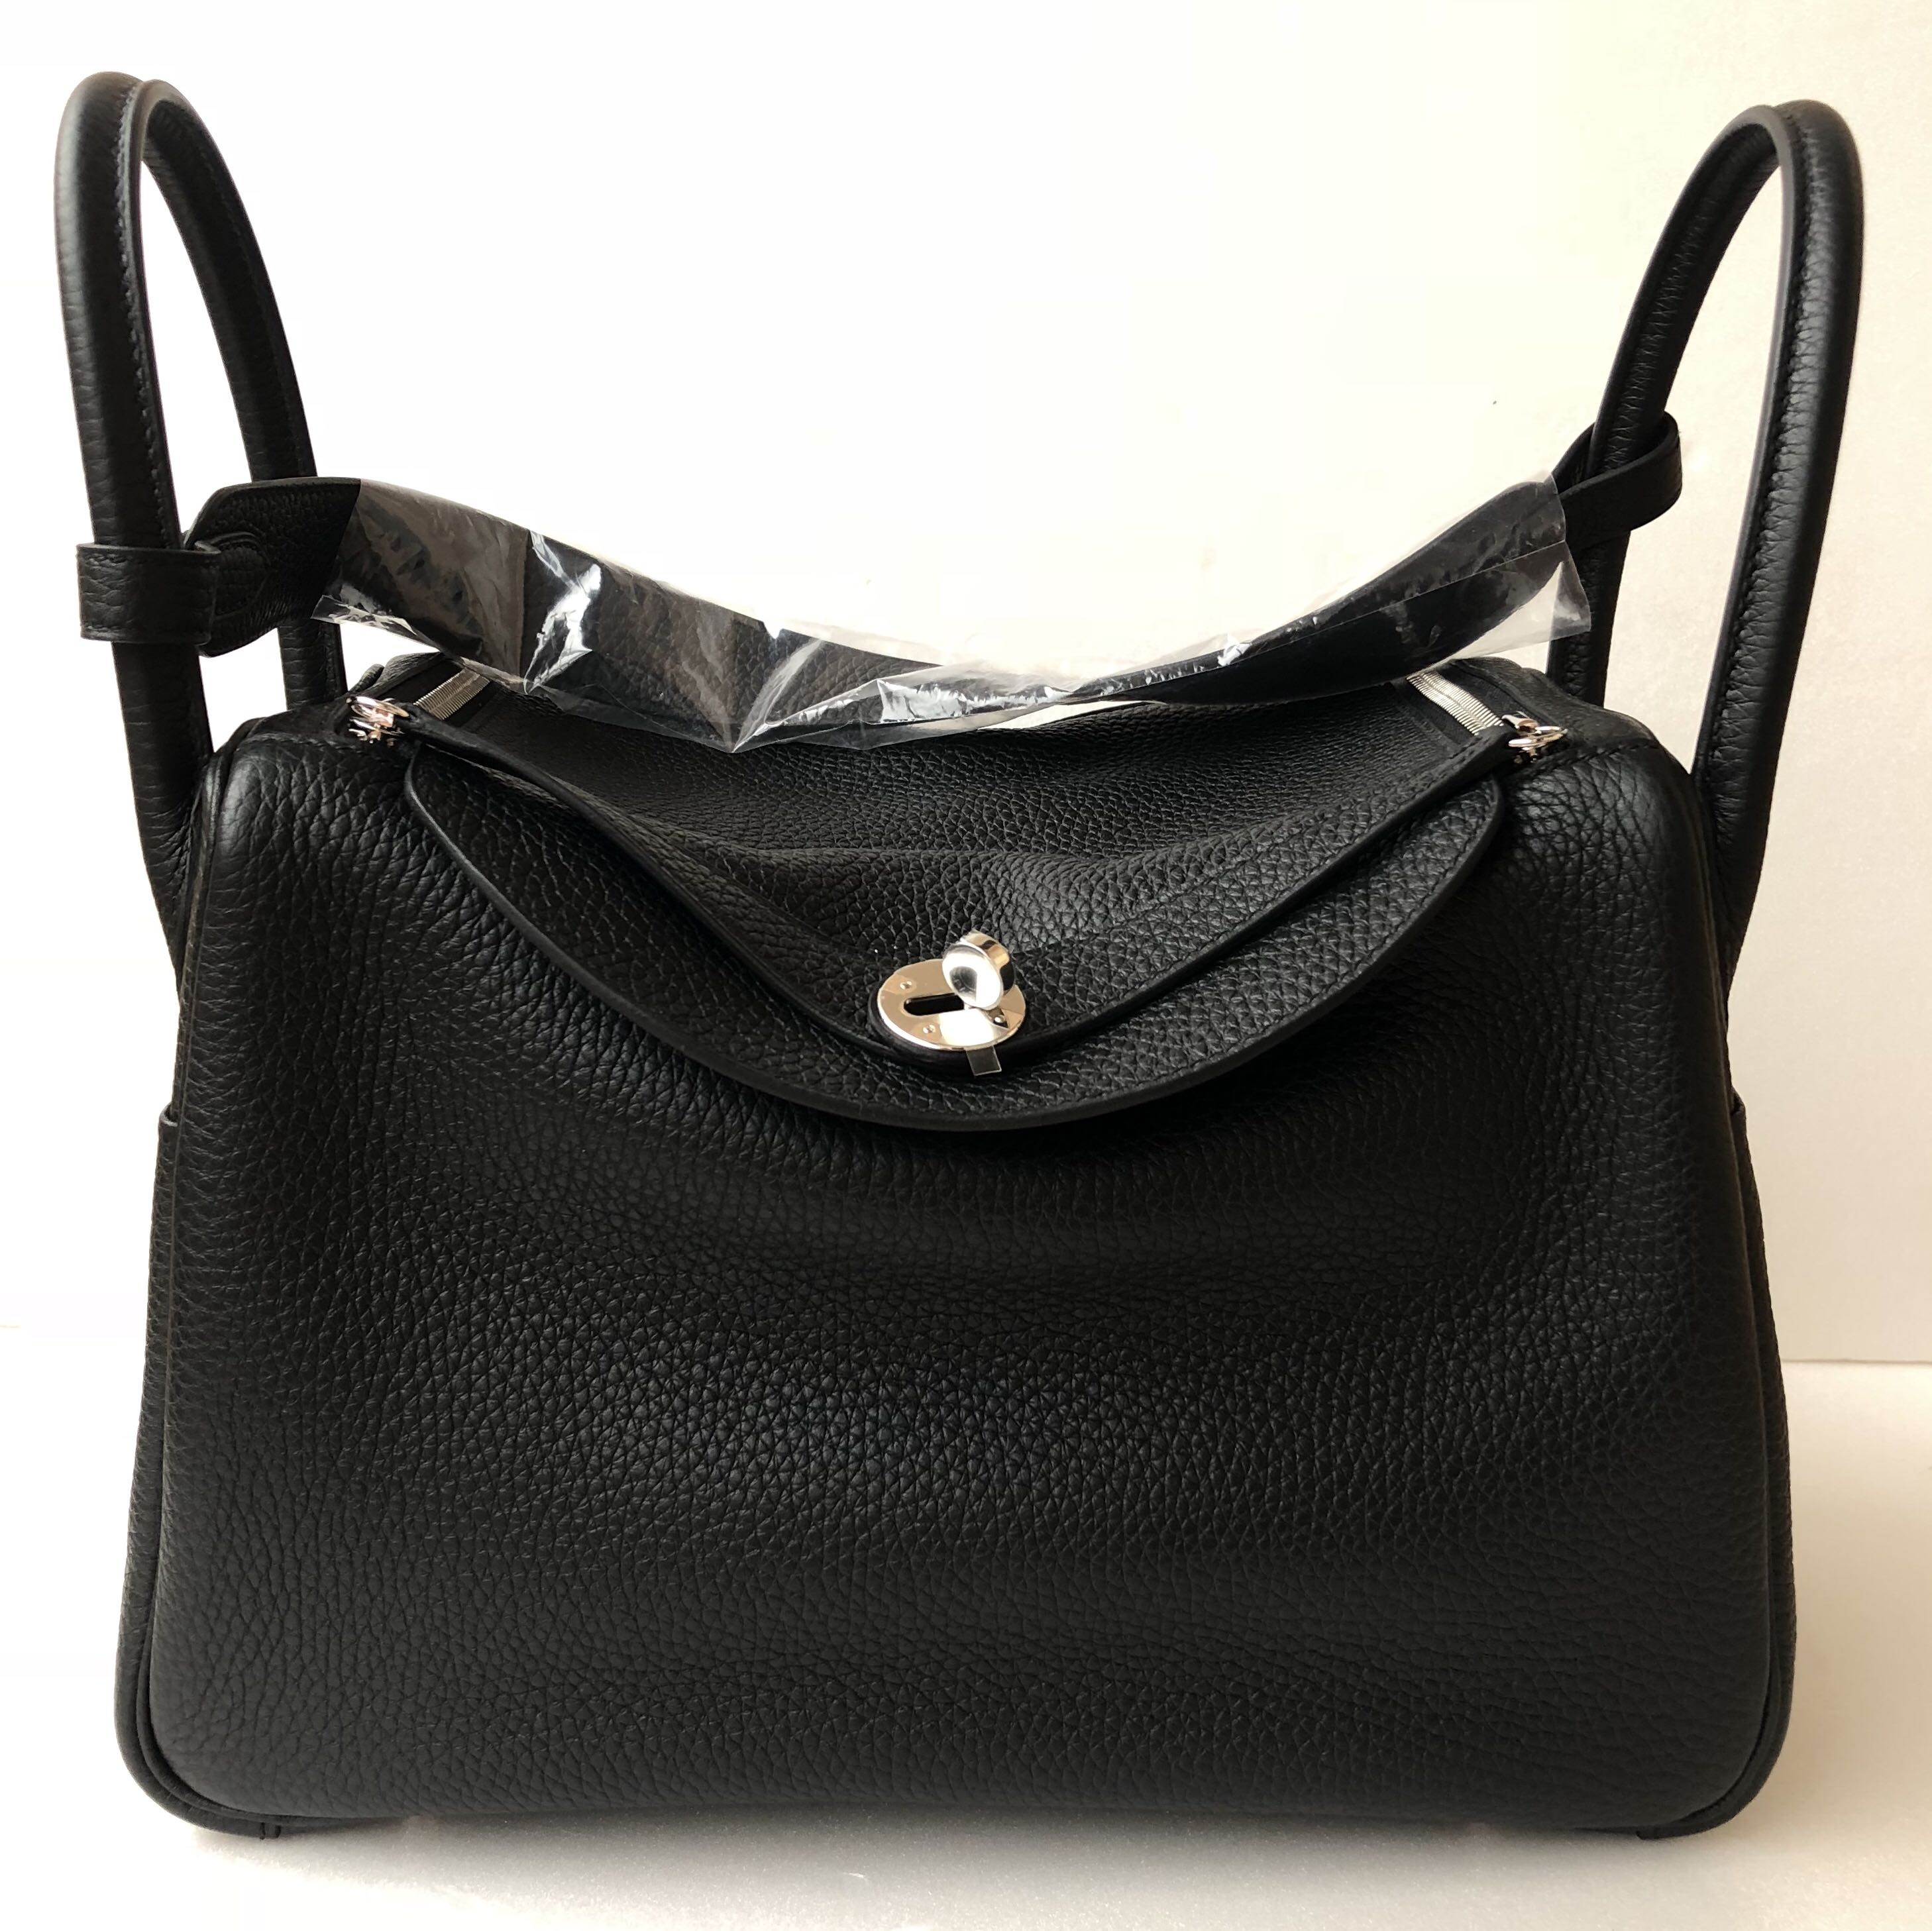 Hermes - Black Lindy 30 in Taurillon Clémence with PHW, Luxury, Bags    Wallets, Handbags on Carousell 5281b95d57